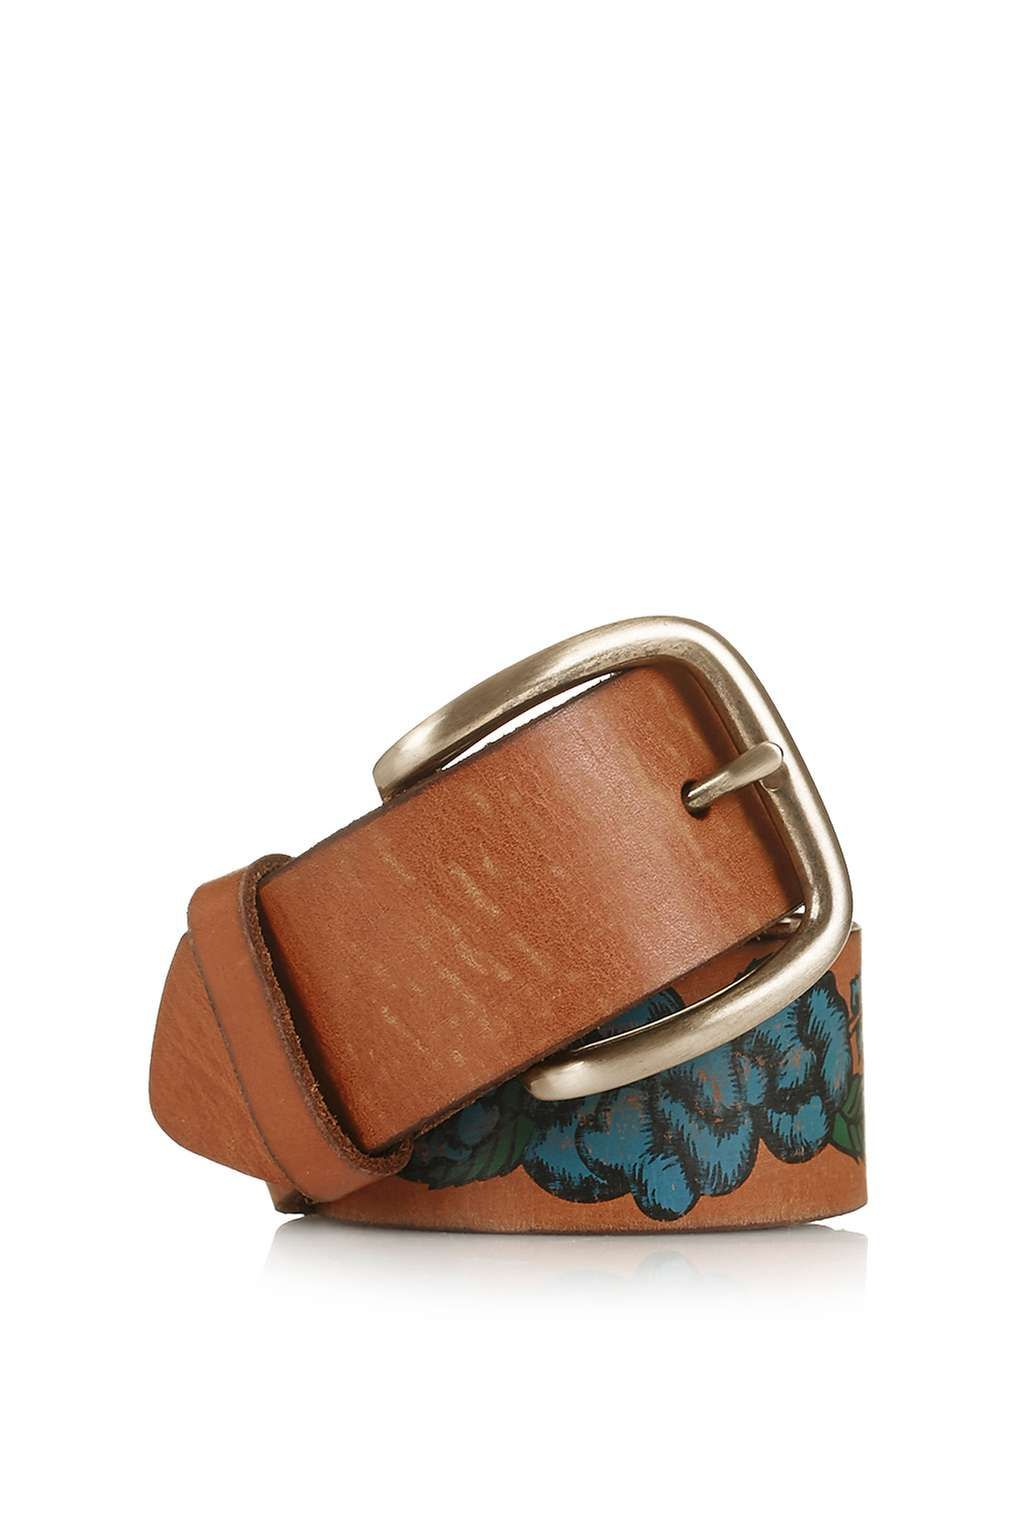 Leather Paint Flower Belt - Topshop